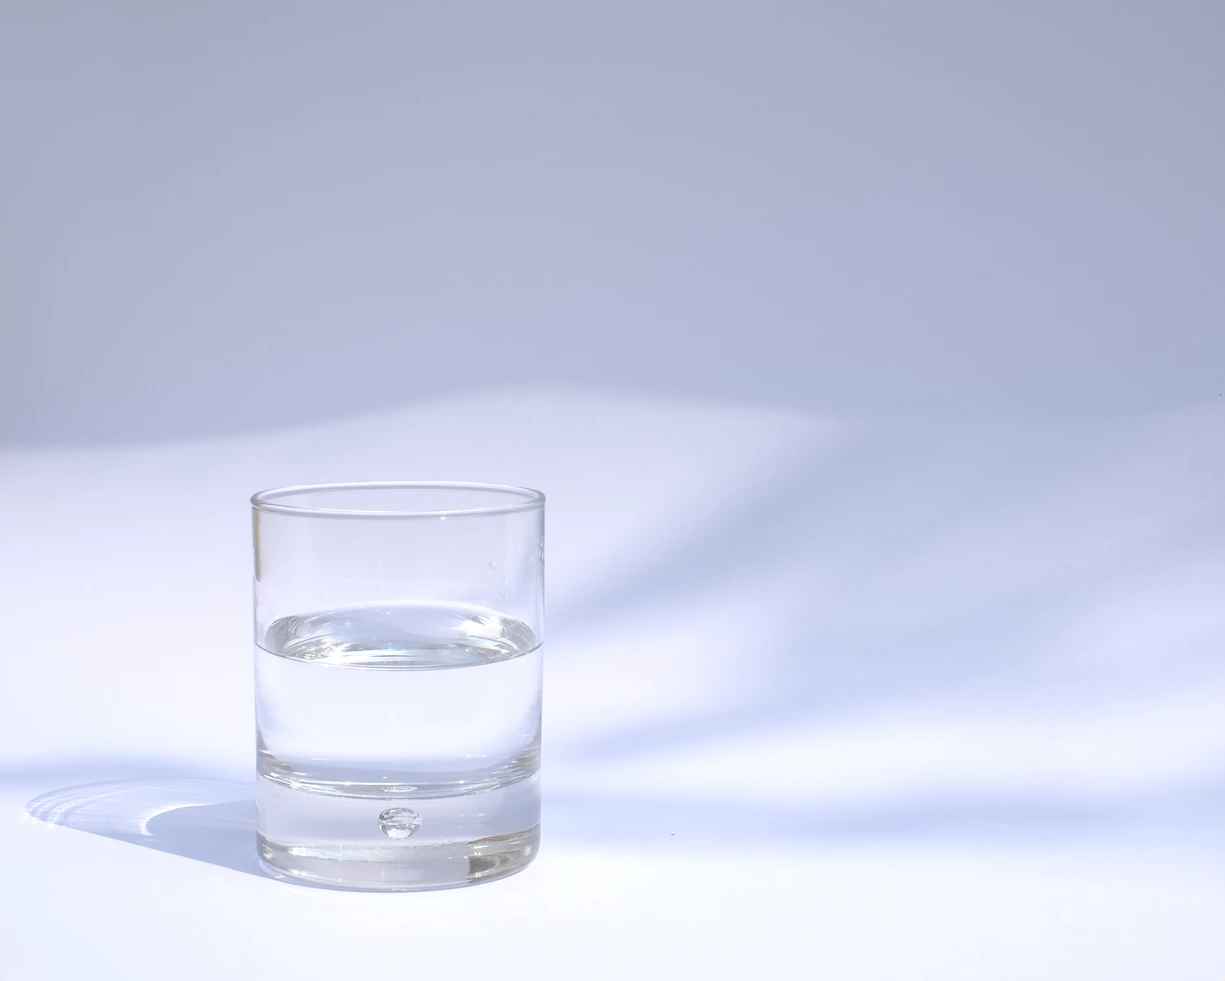 glass of water on a white desk